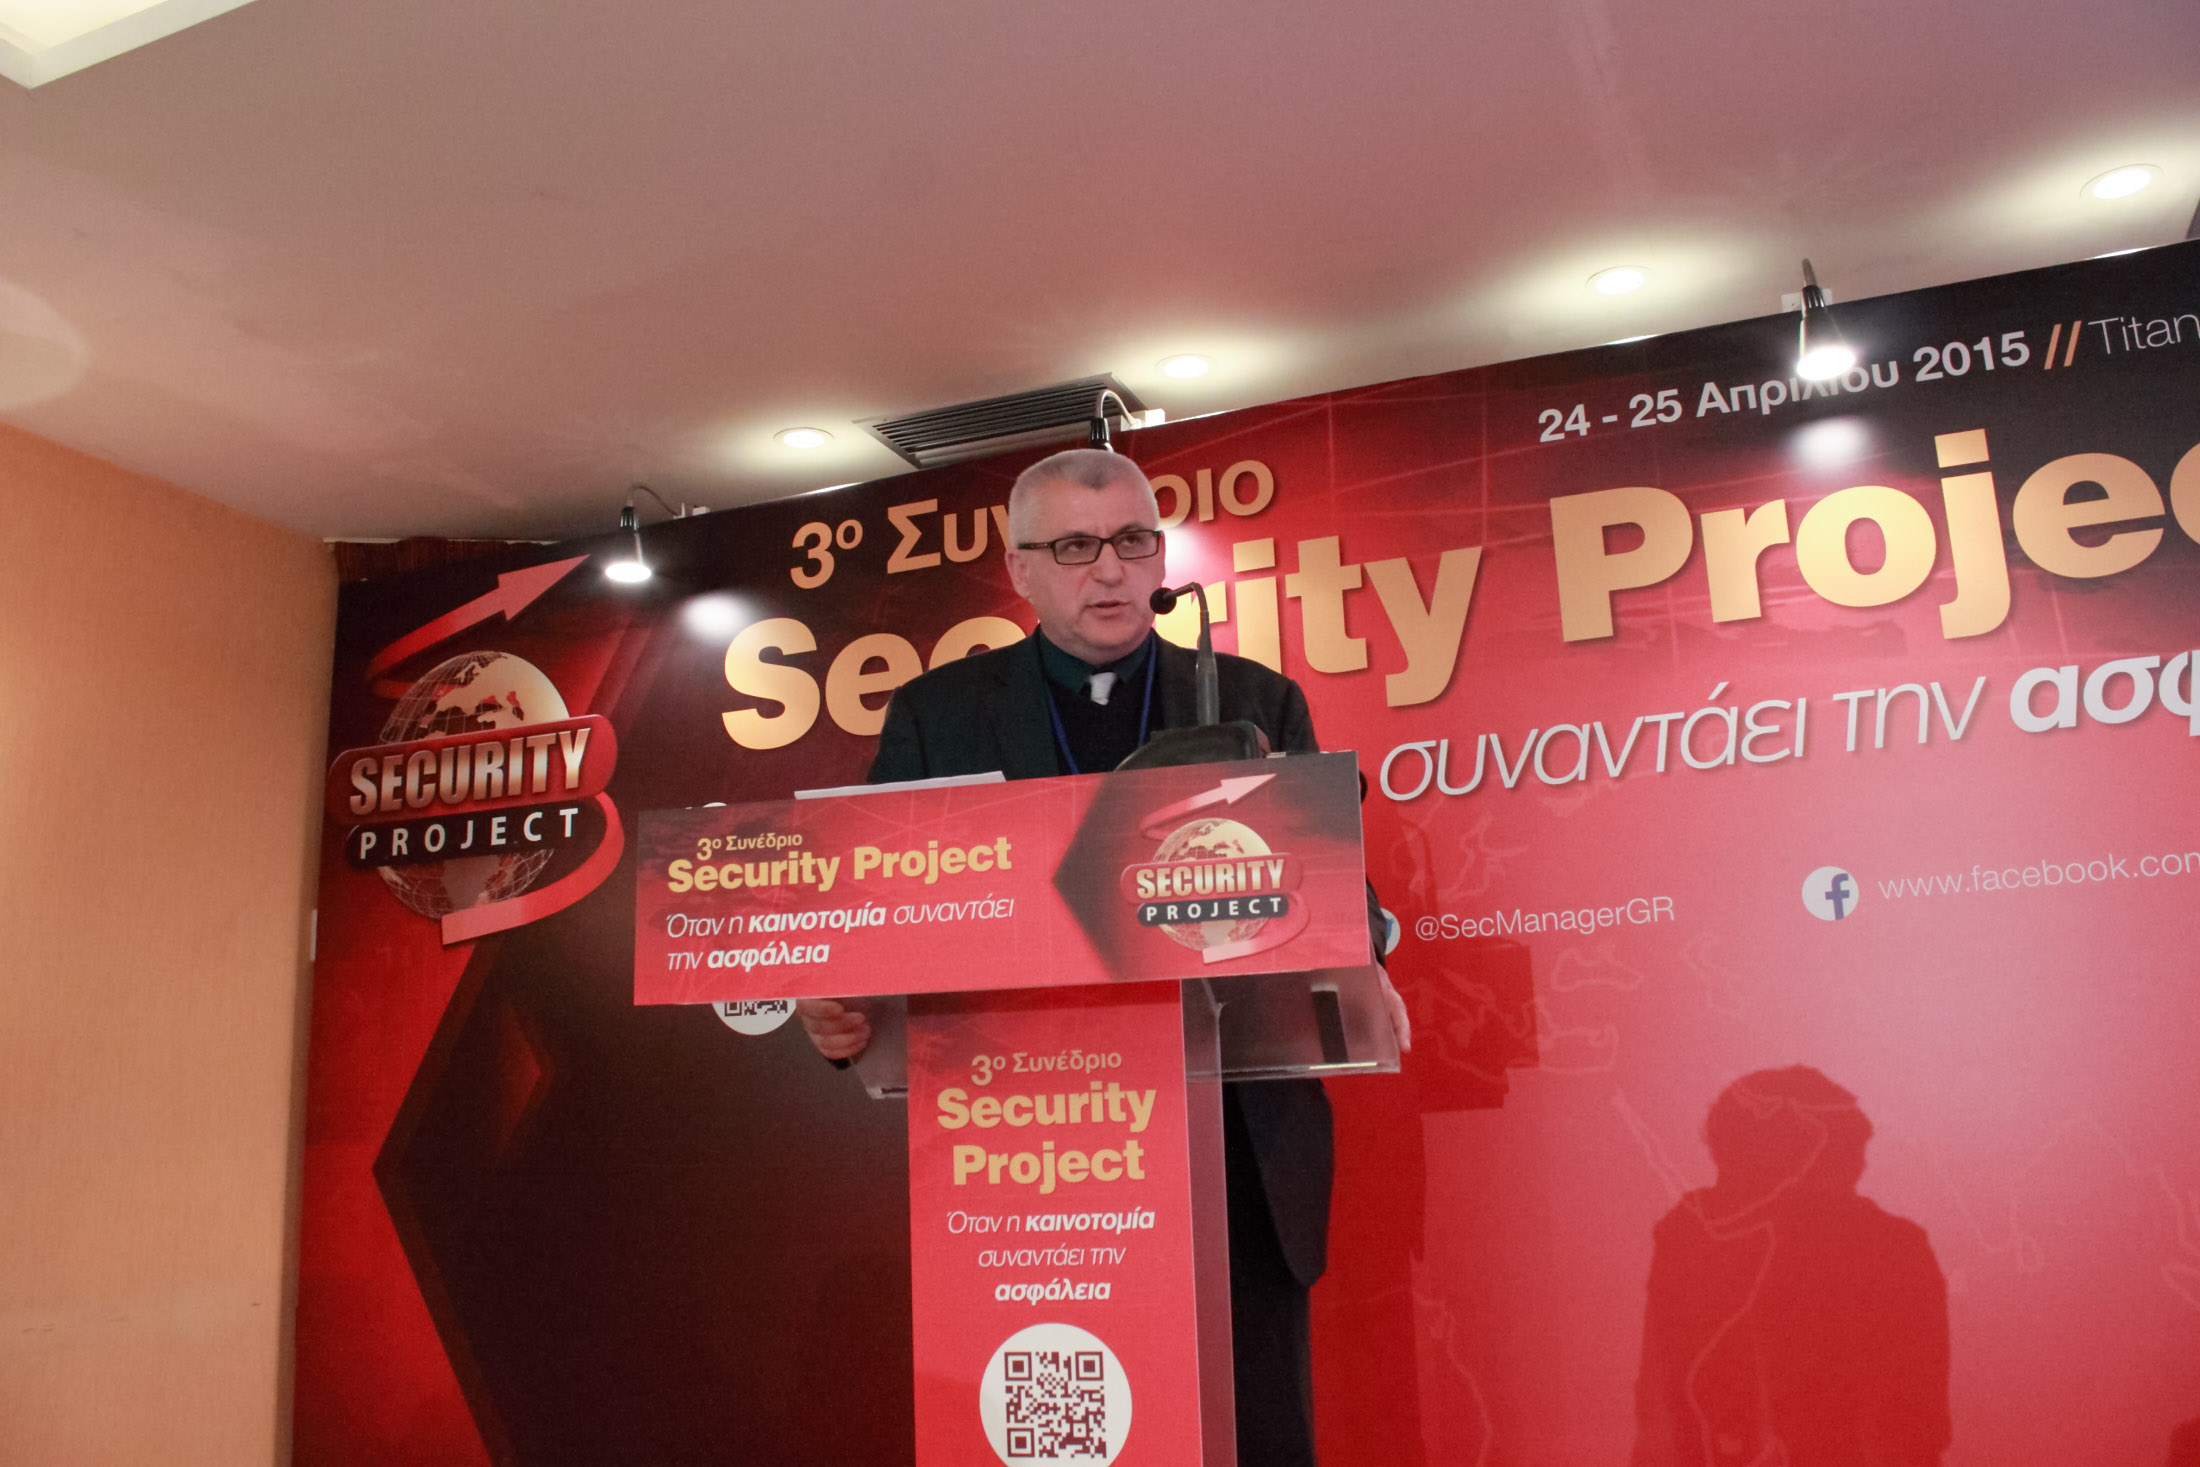 Securityprojecty15